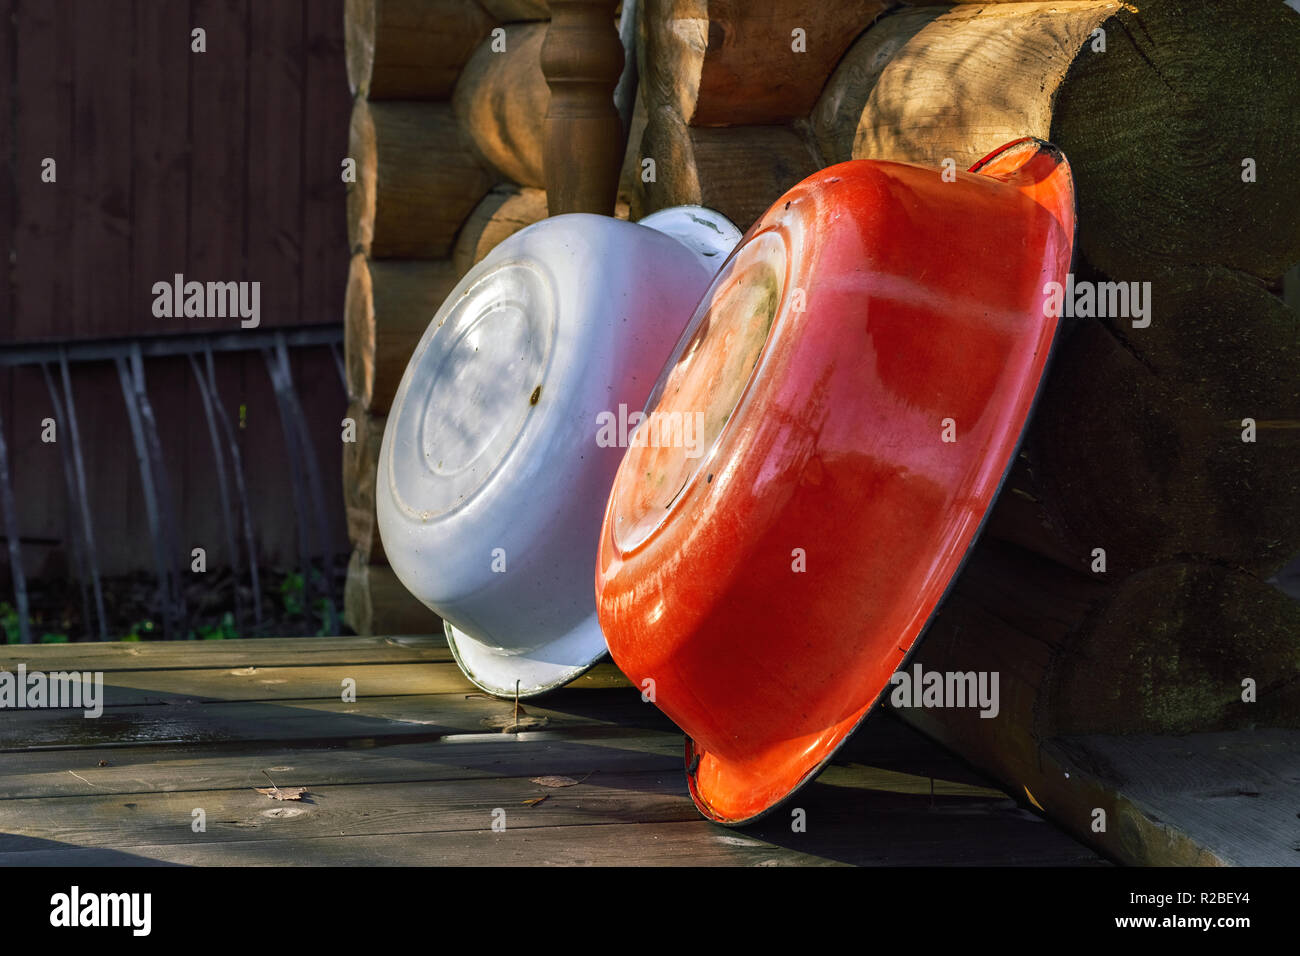 Two enameled household basins, standing on the wooden floor and leaning against the wall of logs. - Stock Image